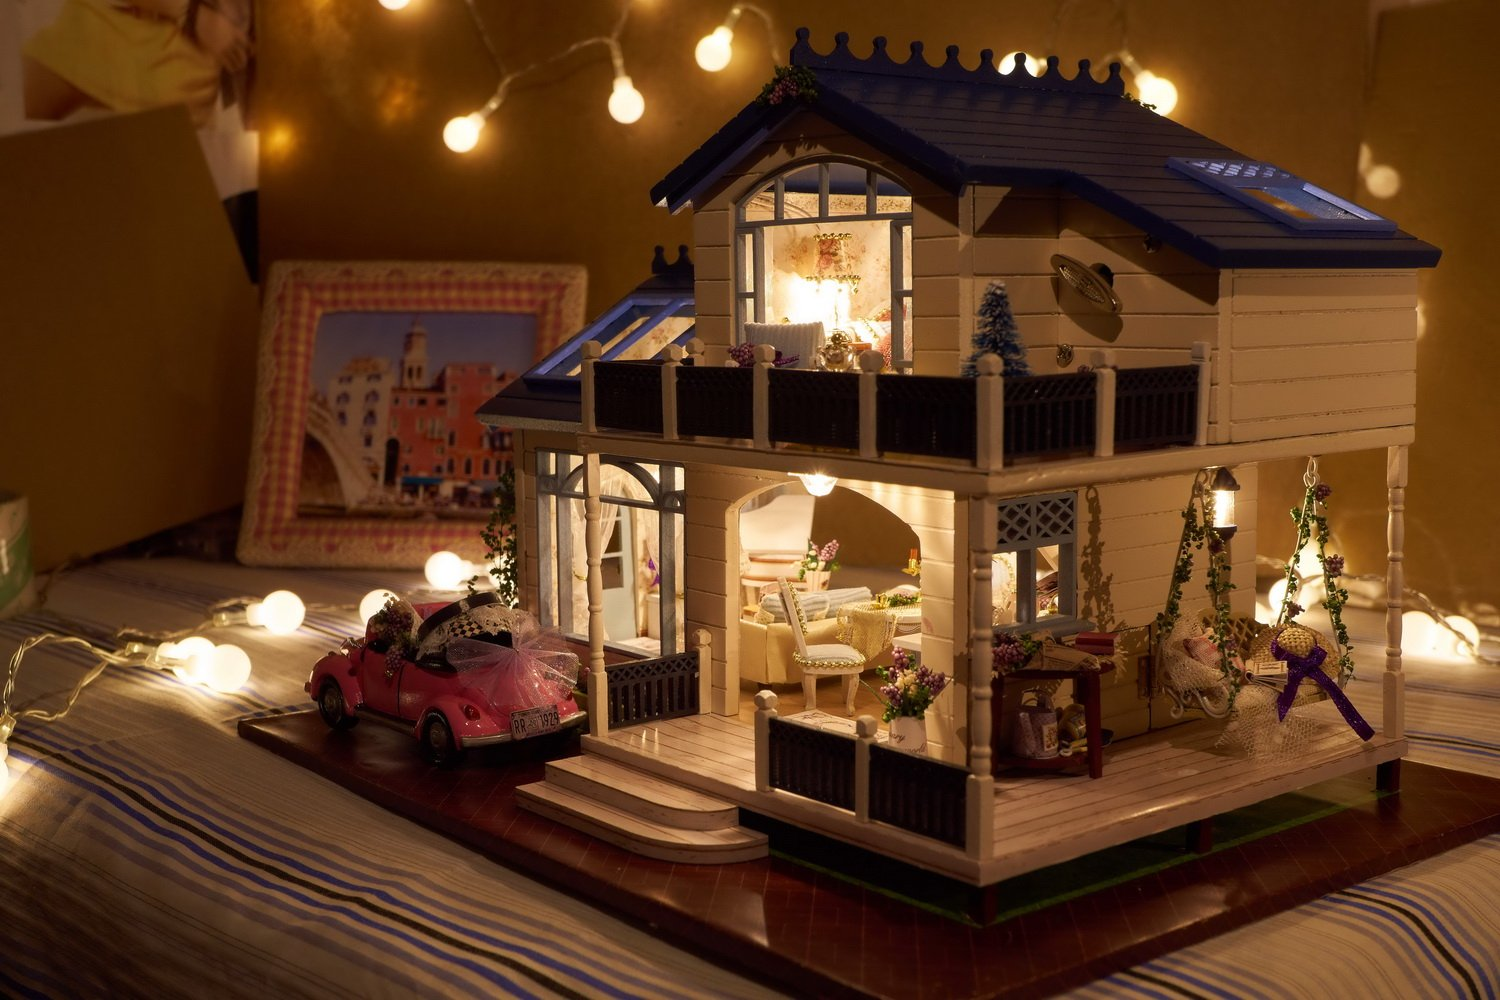 Provence villa Model /& Furniture /& Voice controller Music box DIY Wooden Dolls House Handcraft Miniature Kit